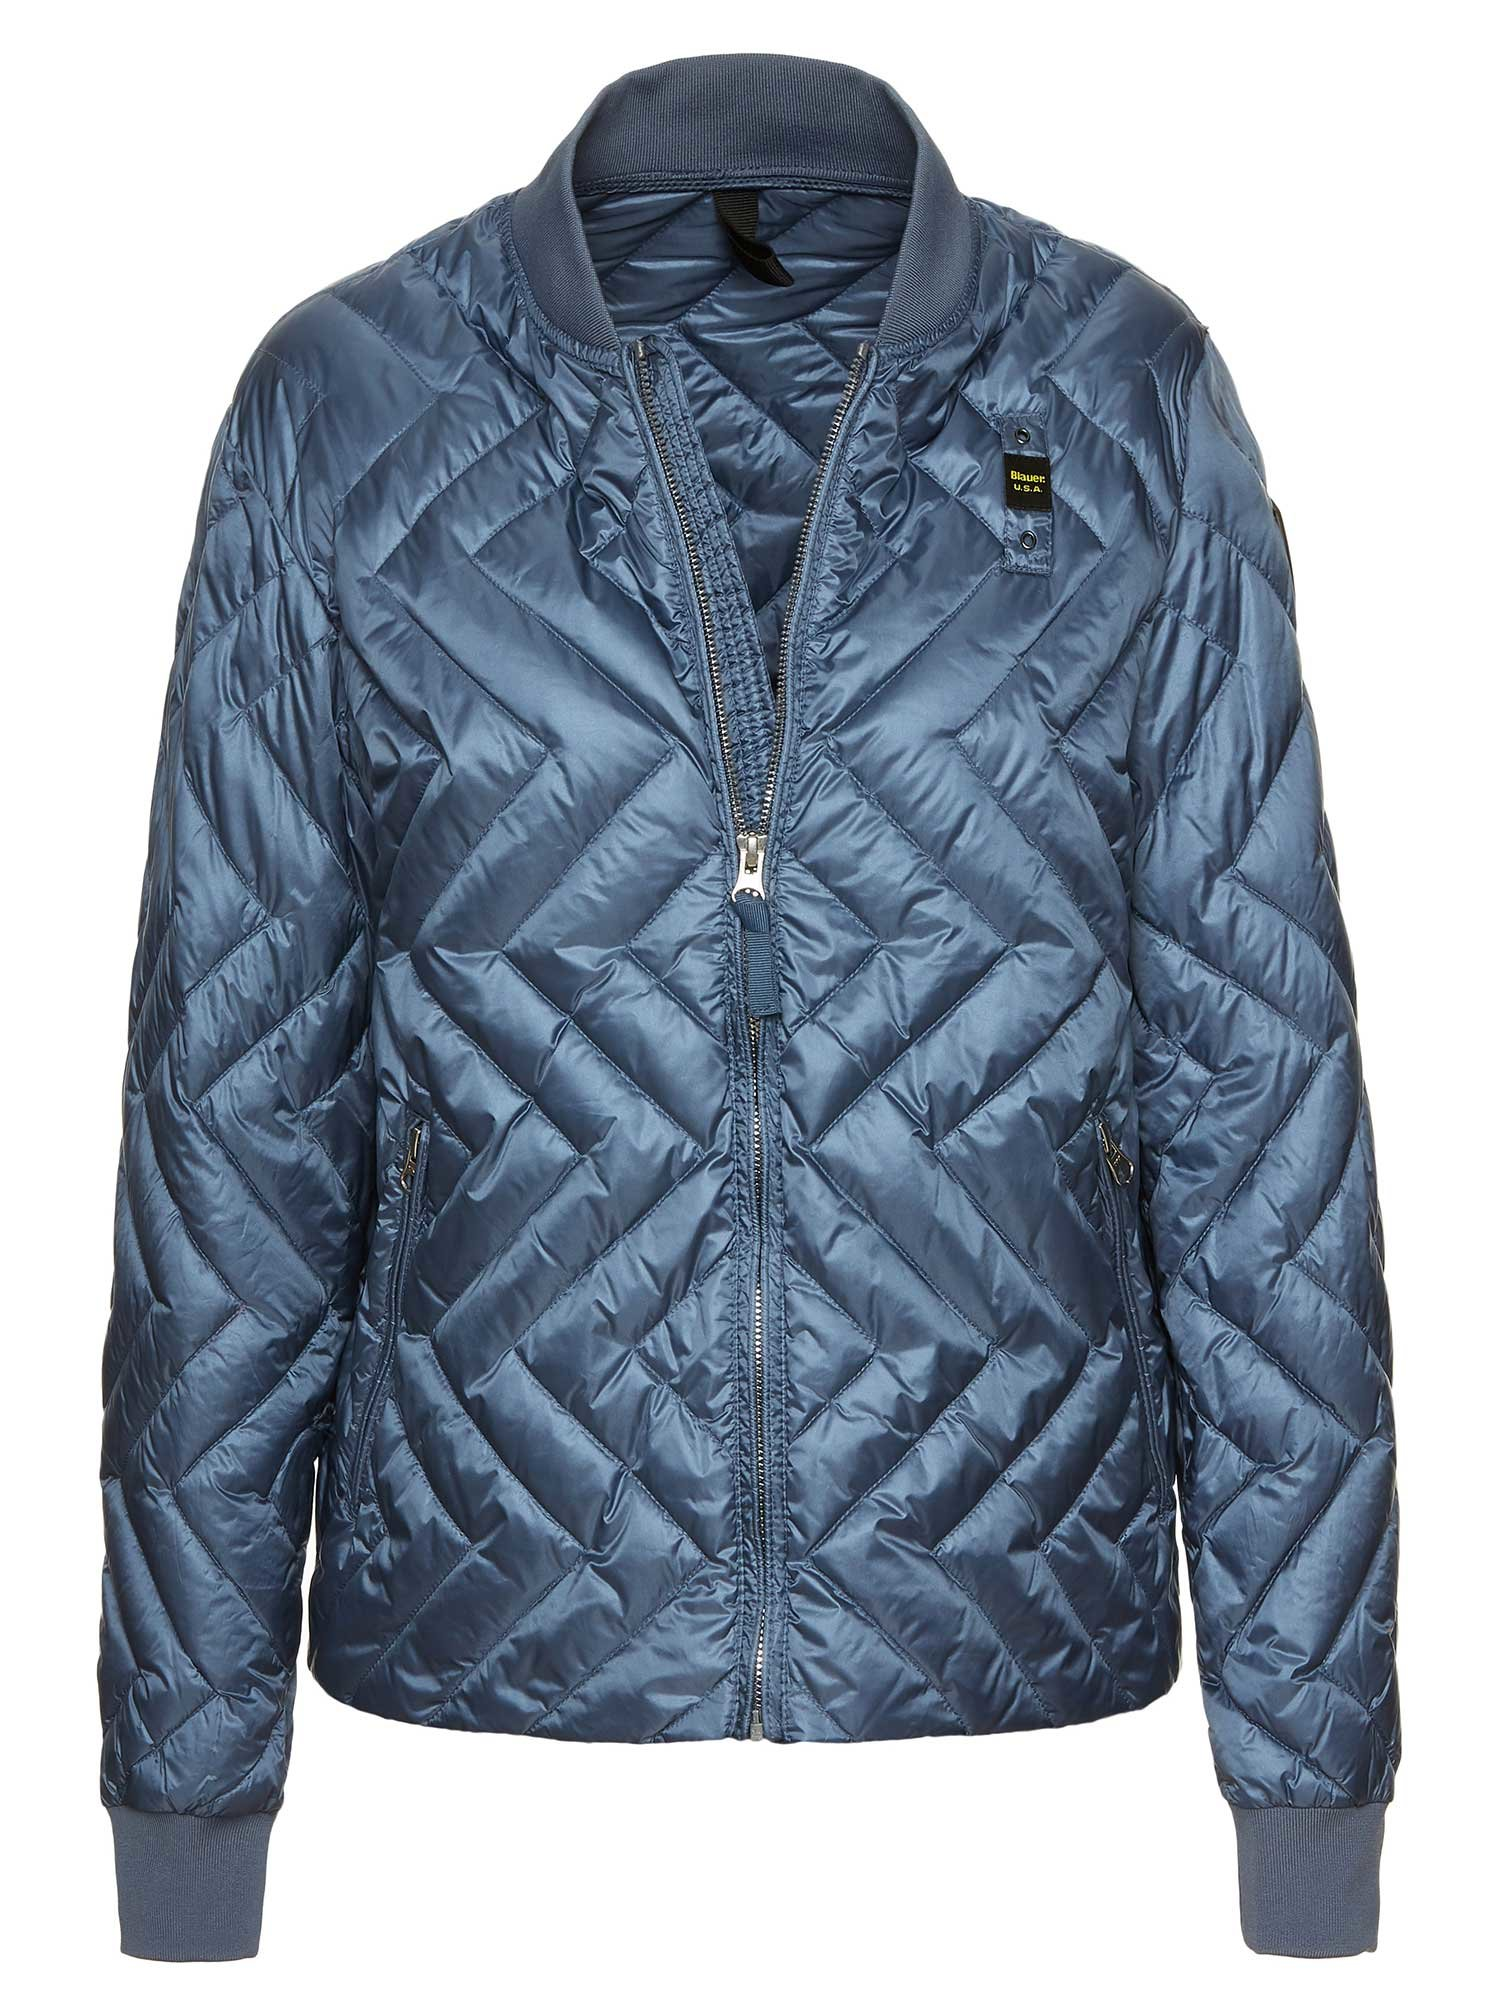 MAYA WOMEN'S ZIG ZAG DOWN JACKET - Blauer